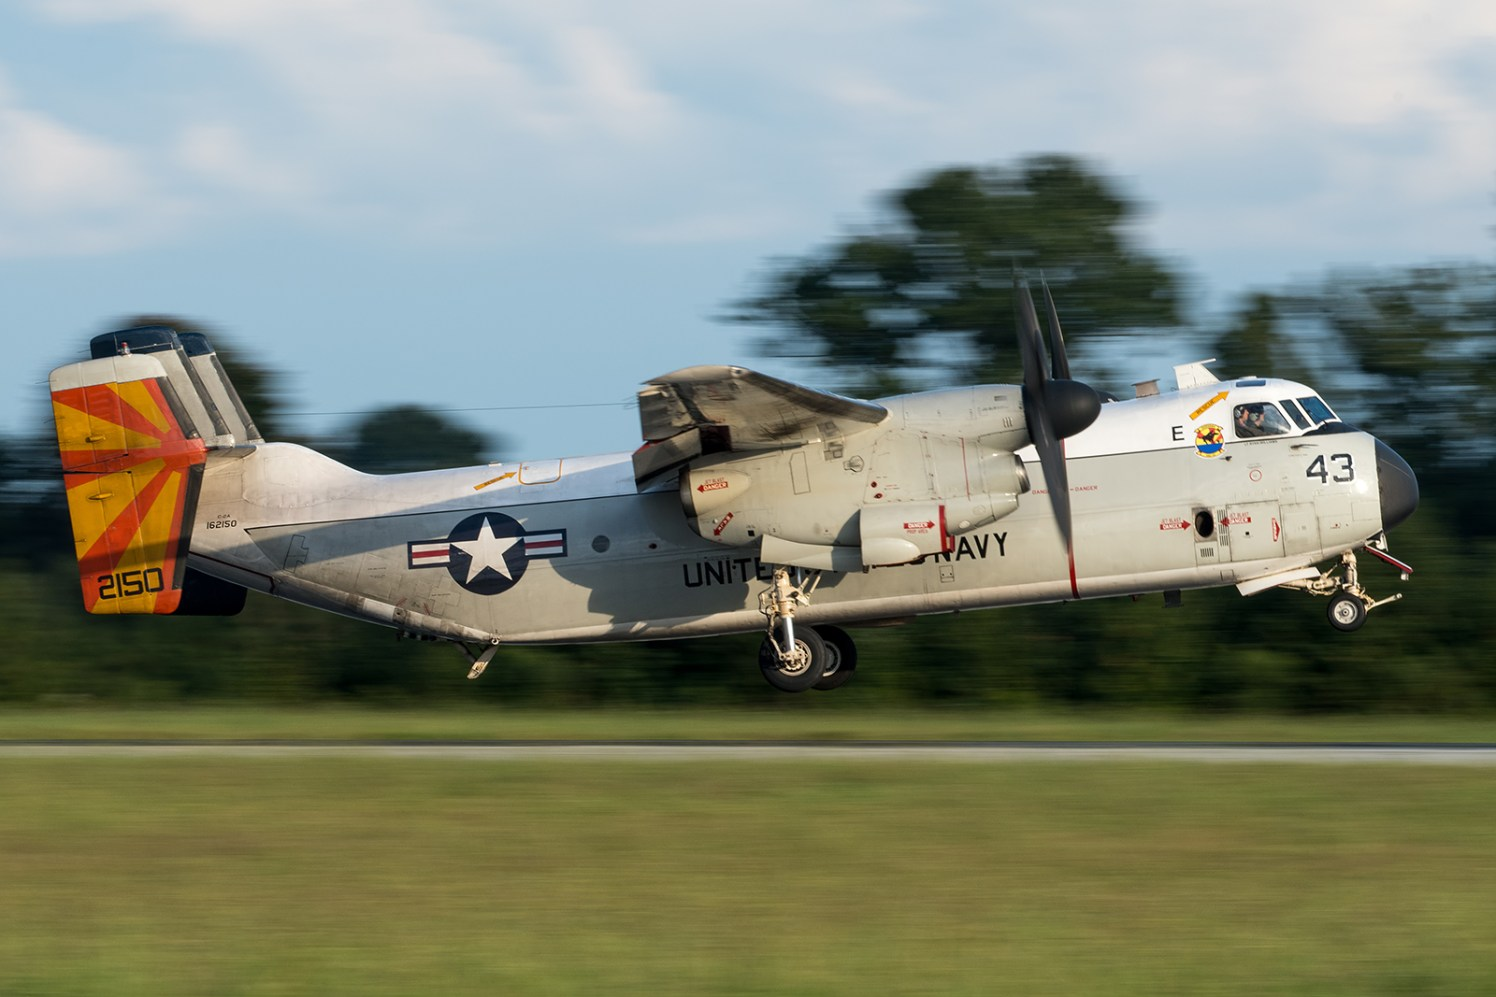 © Duncan Monk - C-2A 162150 / 43 about to touch down at NALF Fentress - VRC-40 'Rawhides' – C-2A Greyhound